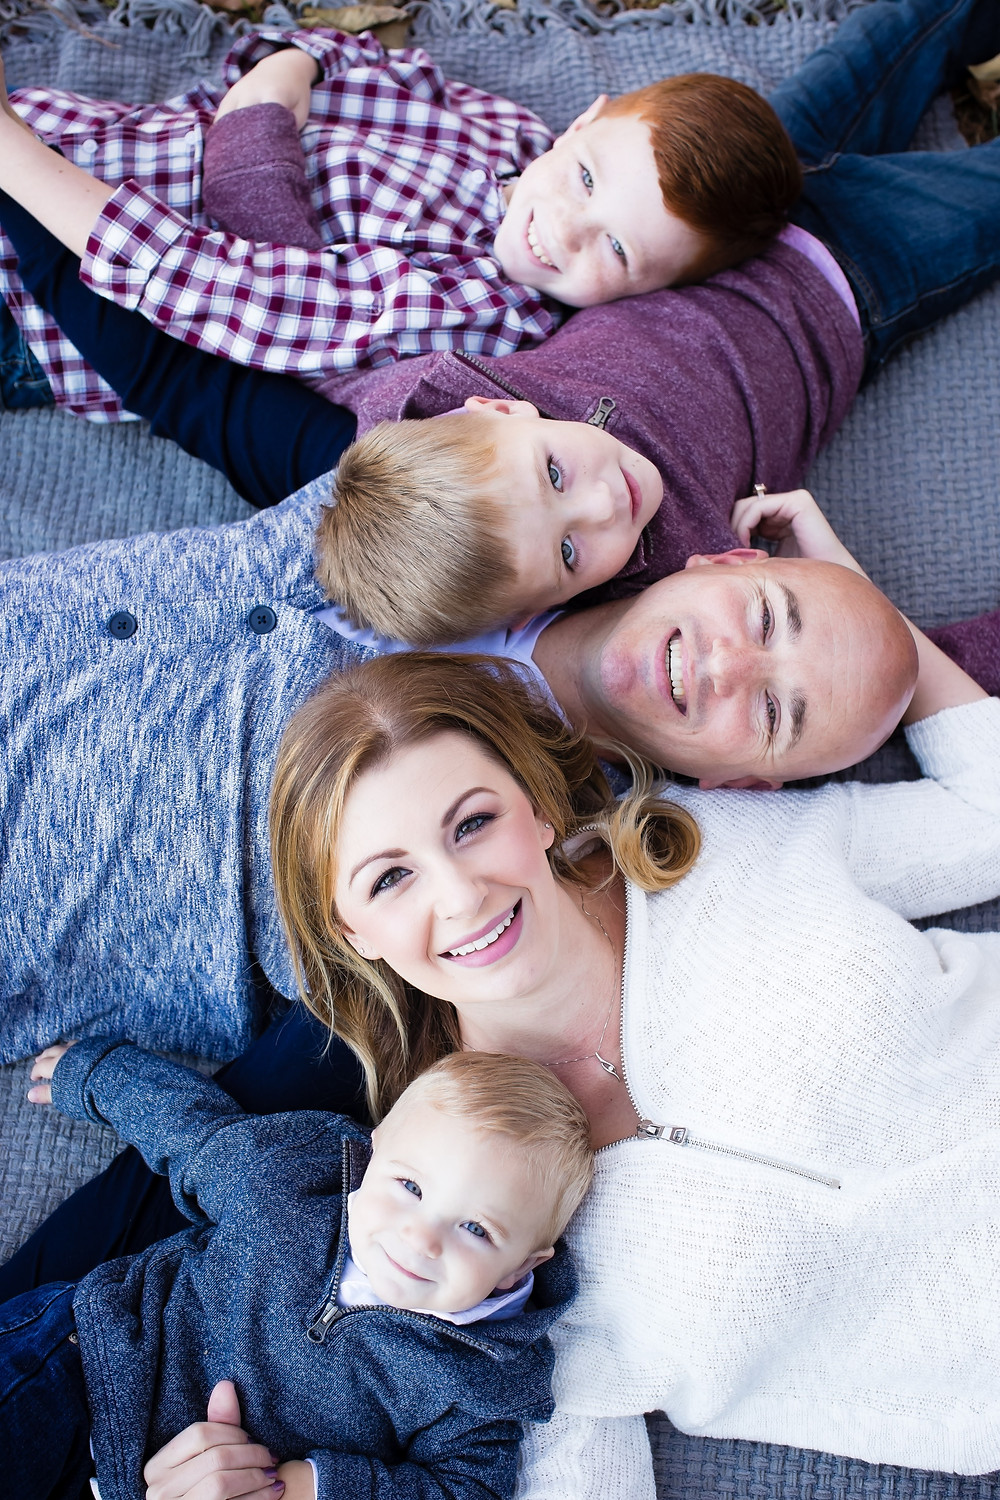 Pictures of a family that is coordinating the colors good for a family photo shoot by Kerry Paradis Photography